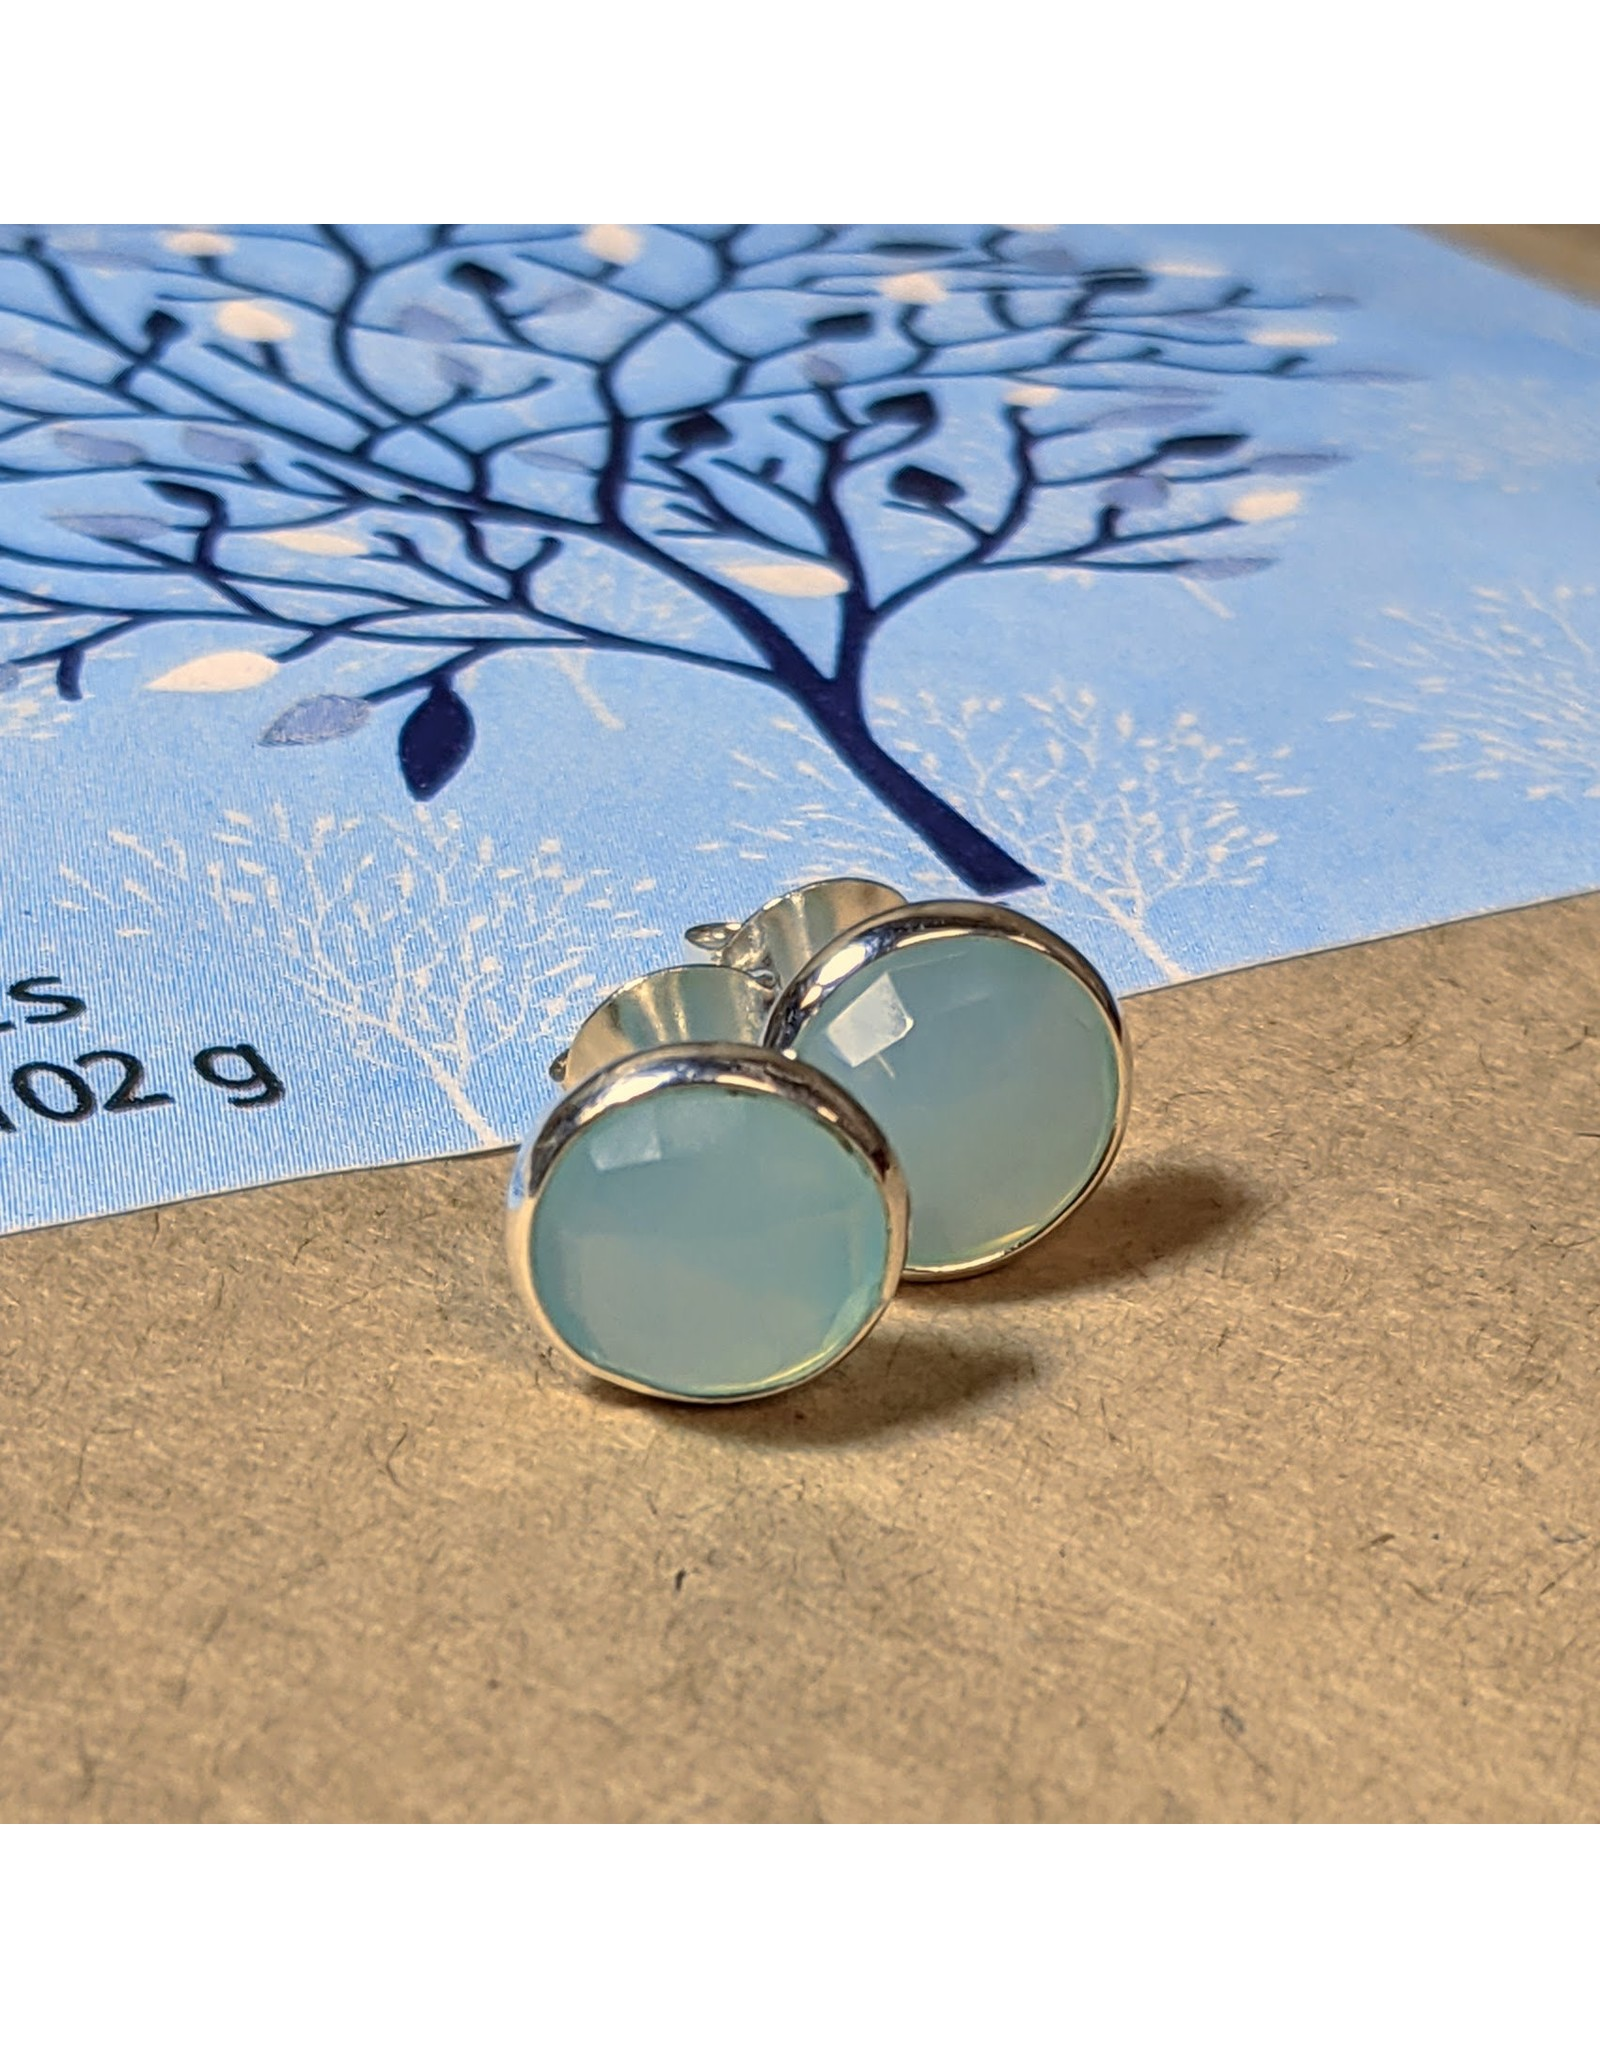 Ten Thousand Villages Faceted Chalcedony Studs, India